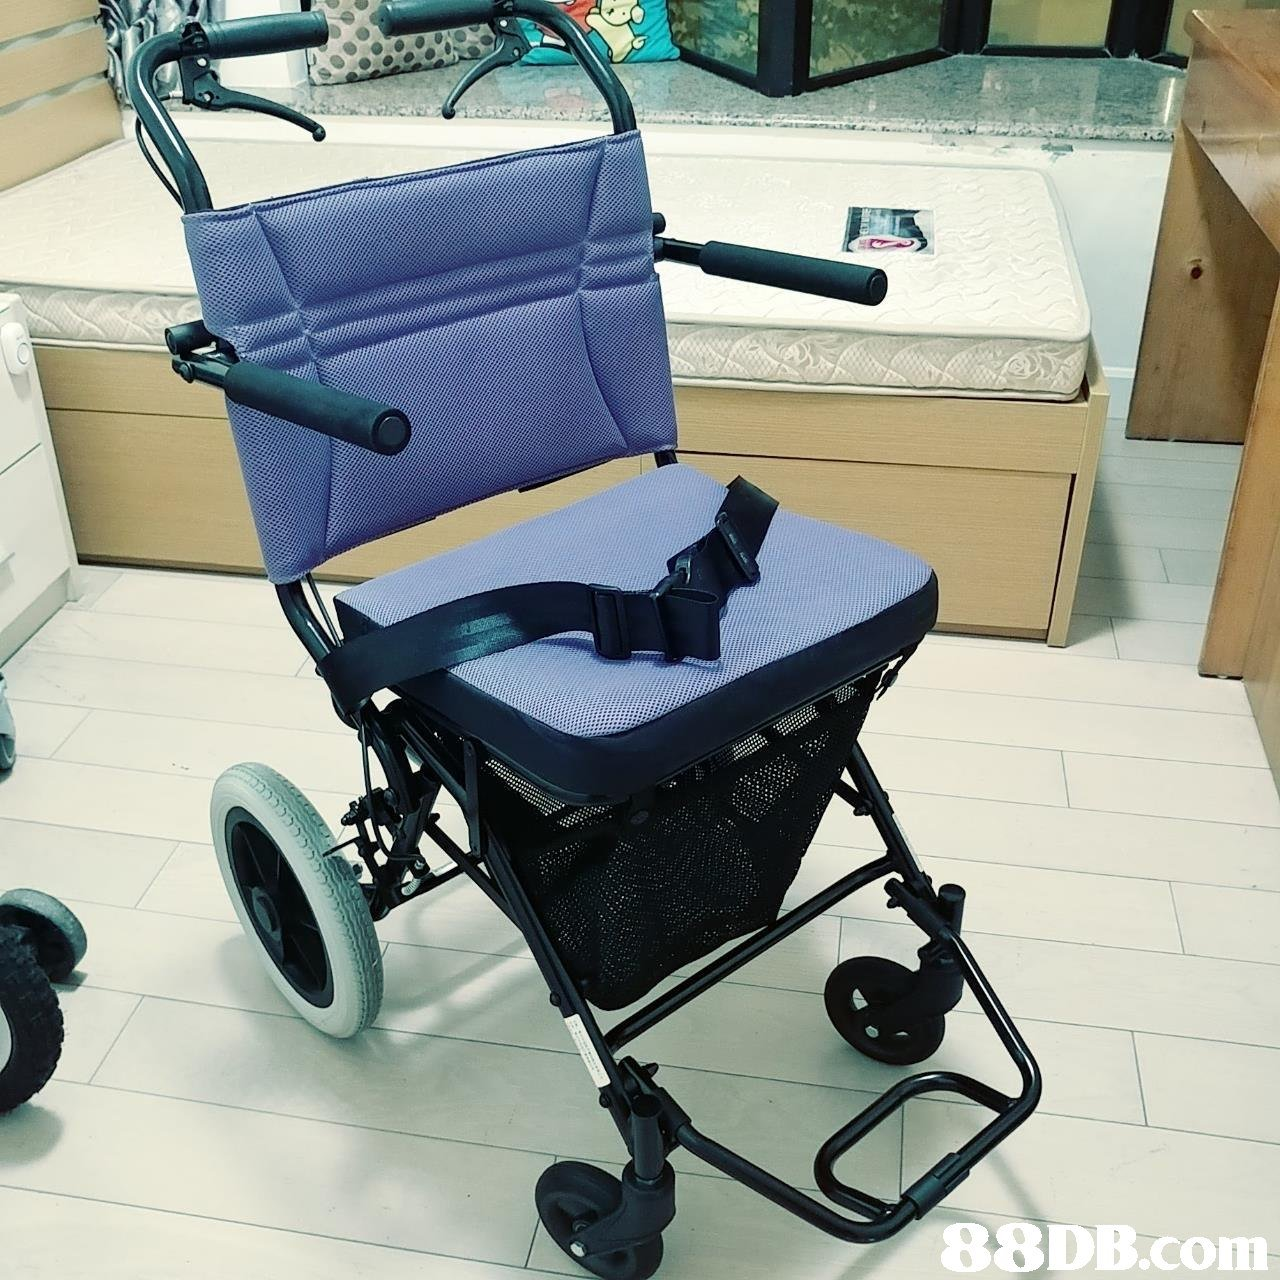 product,wheelchair,product,baby carriage,